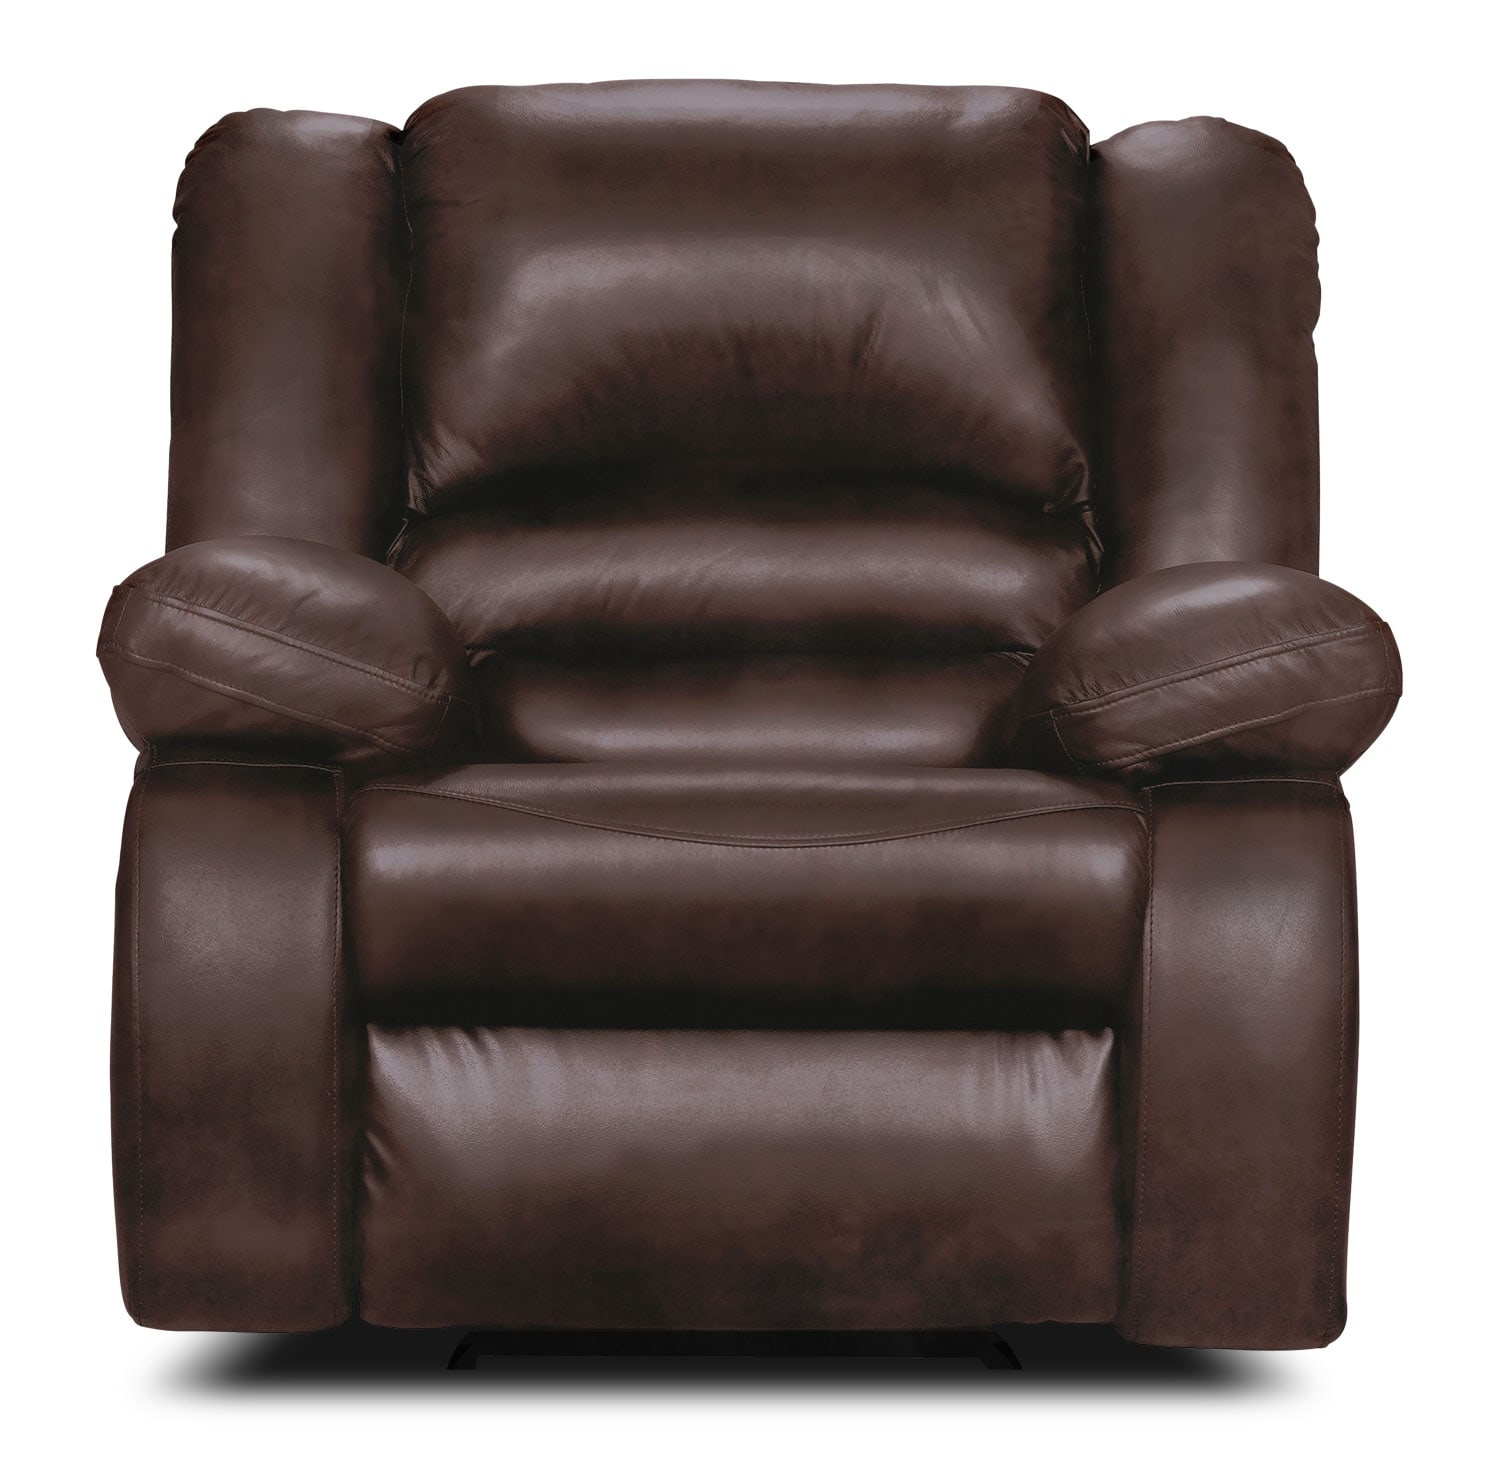 Living Room Furniture - Toreno Brown Genuine Leather Power Recliner